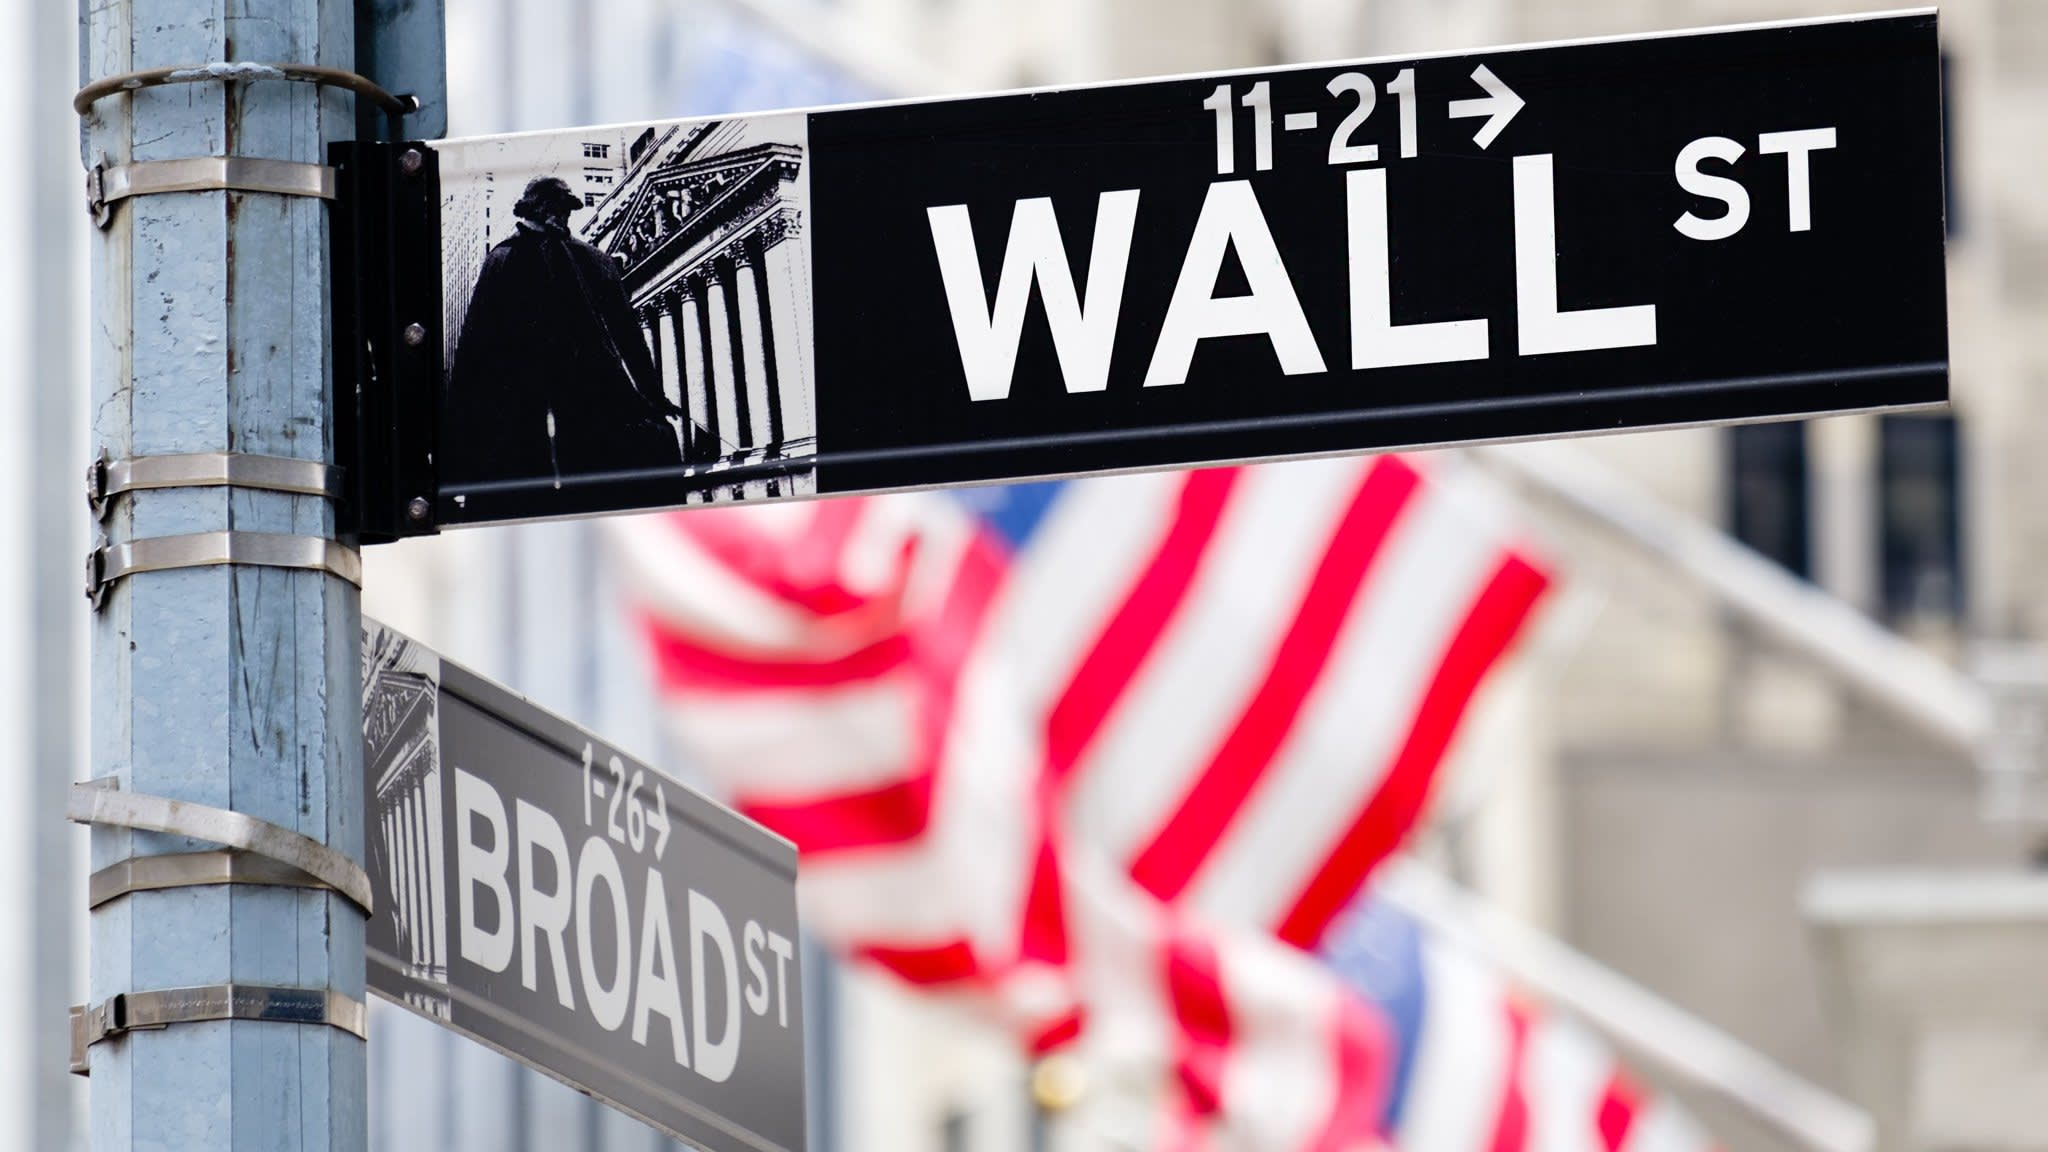 US stock market strength underpinned by strong fund inflows